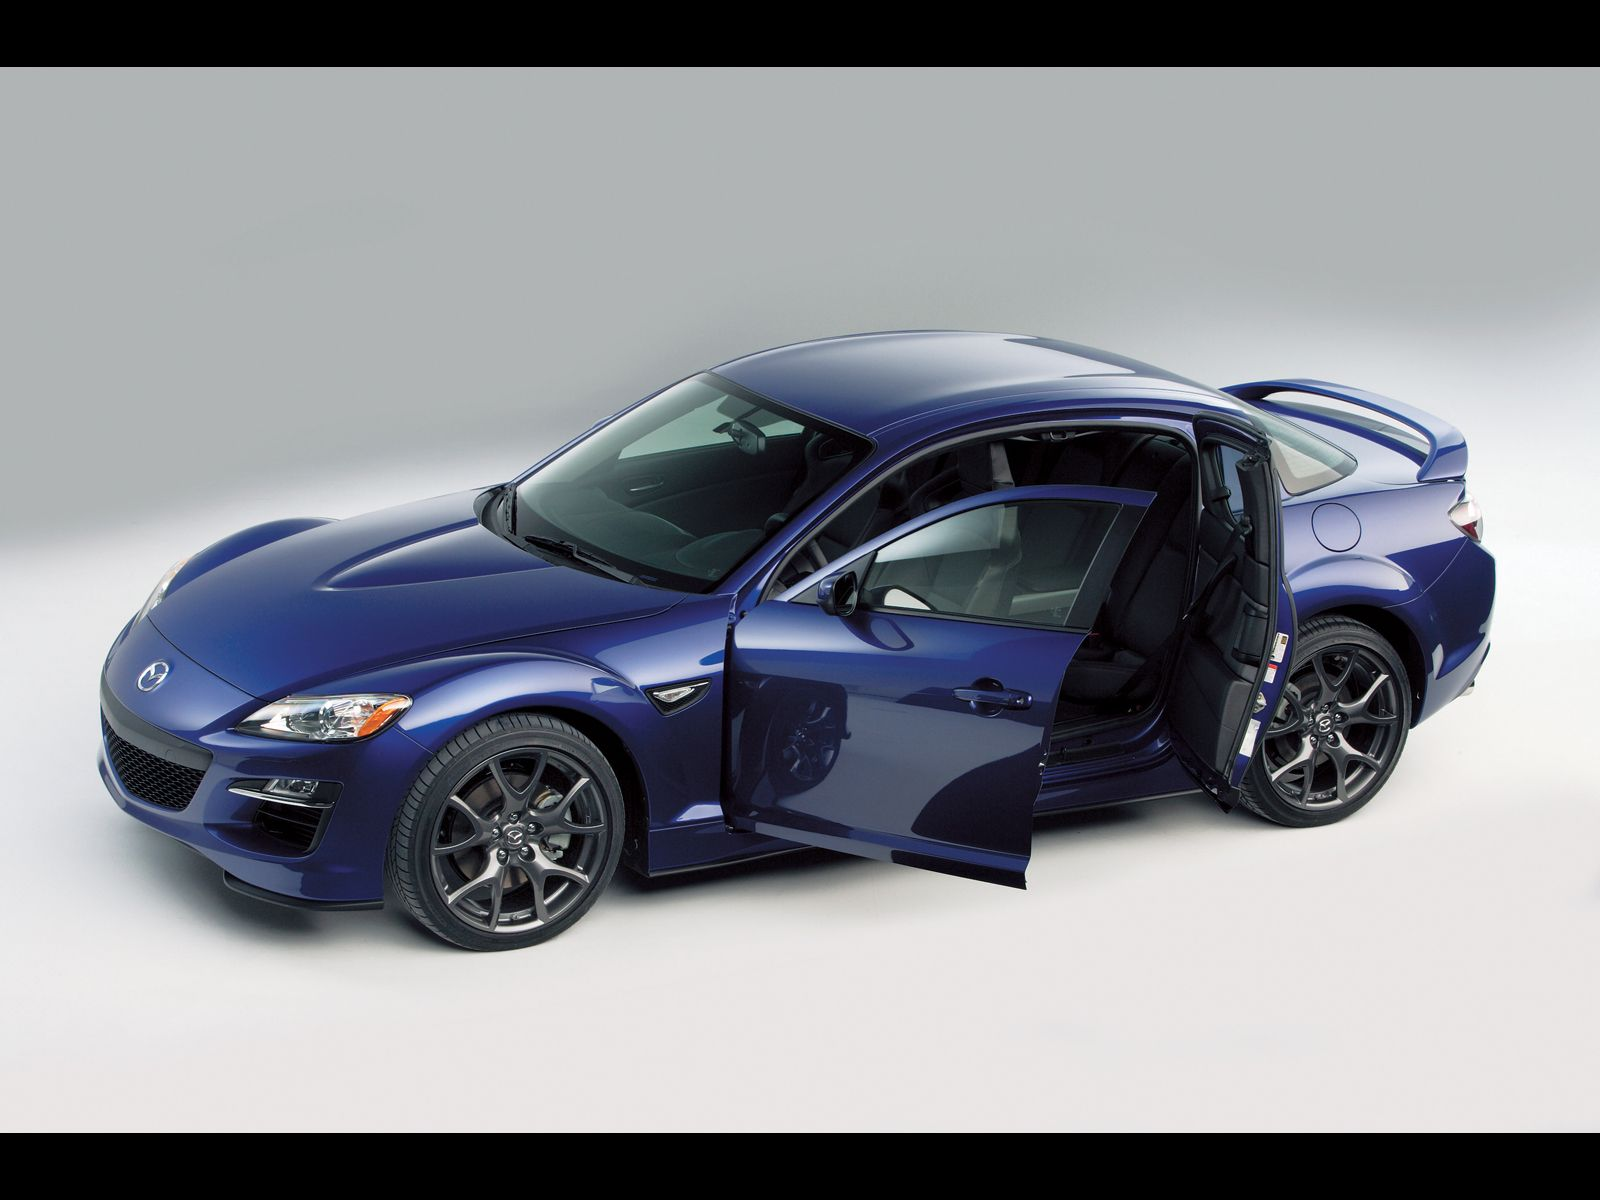 2008 mazda rx 8 pictures cargurus. Black Bedroom Furniture Sets. Home Design Ideas